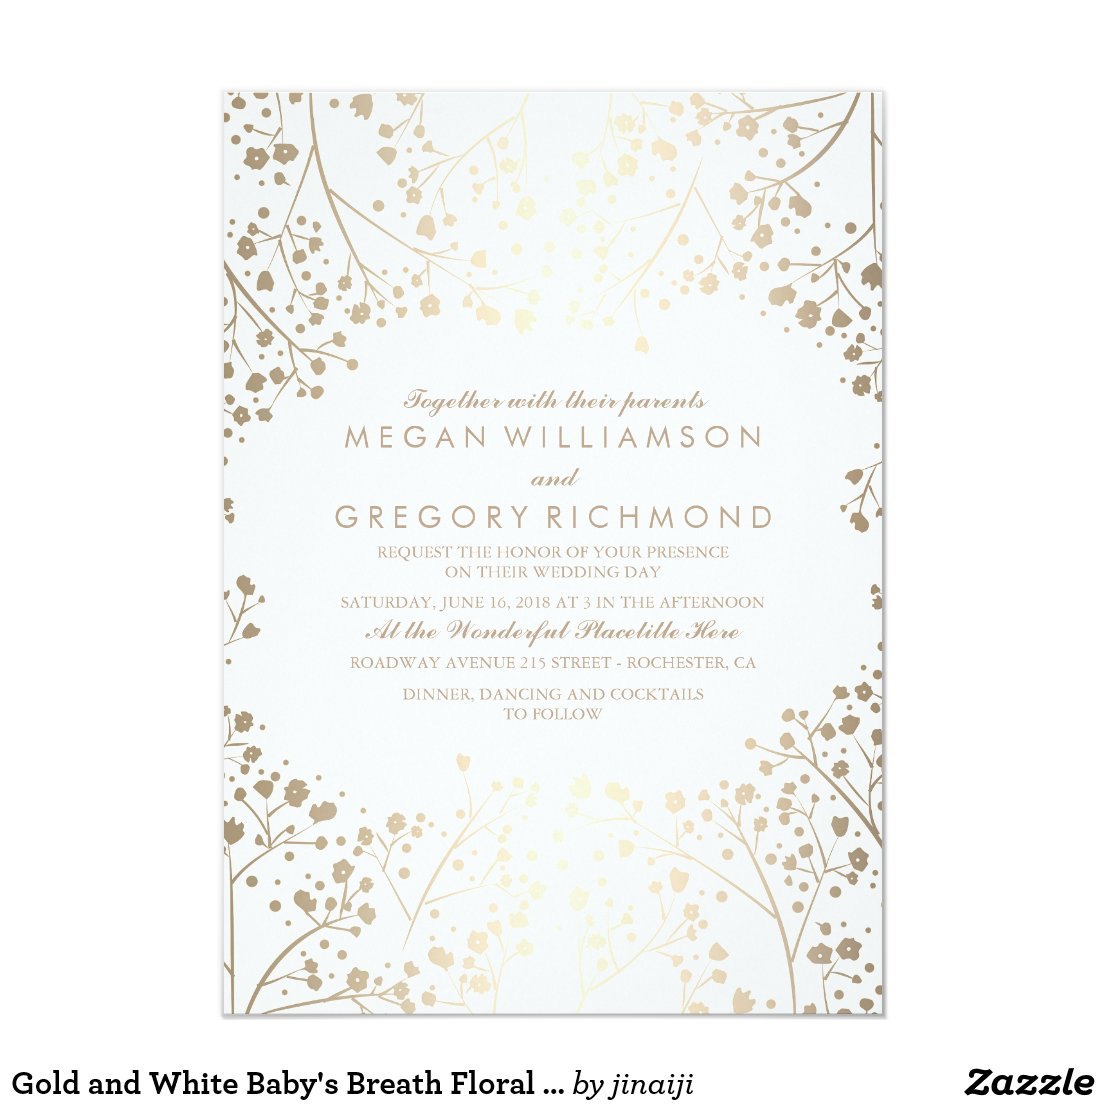 Gold and White Baby's Breath Wedding Invitation